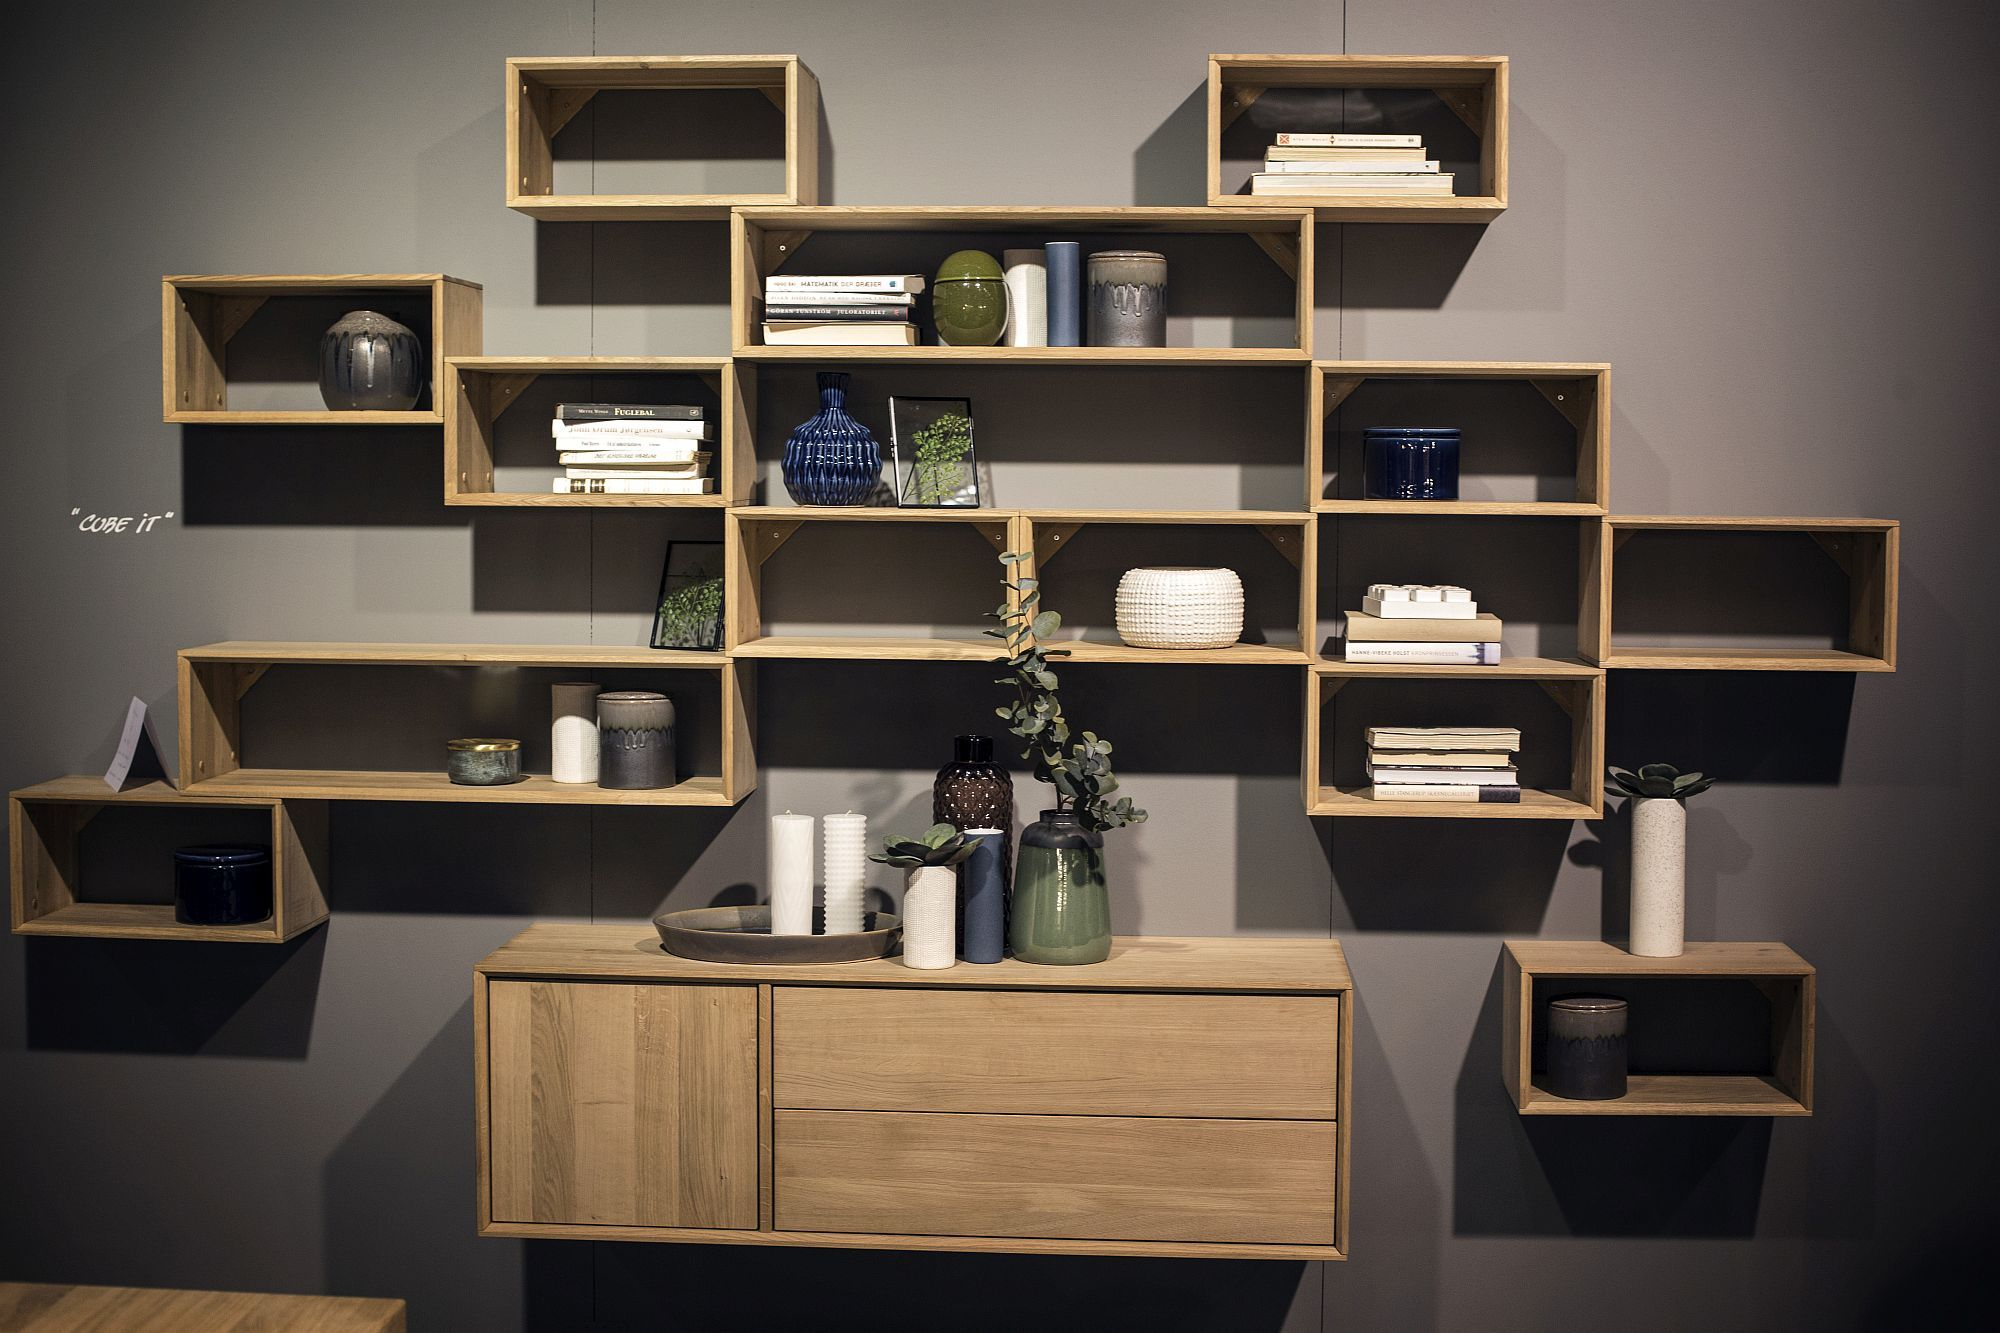 55 Wall Mounted Open Shelves Offering Space Savvy Modularity Wall Shelving Units Decorating Shelves Shelves